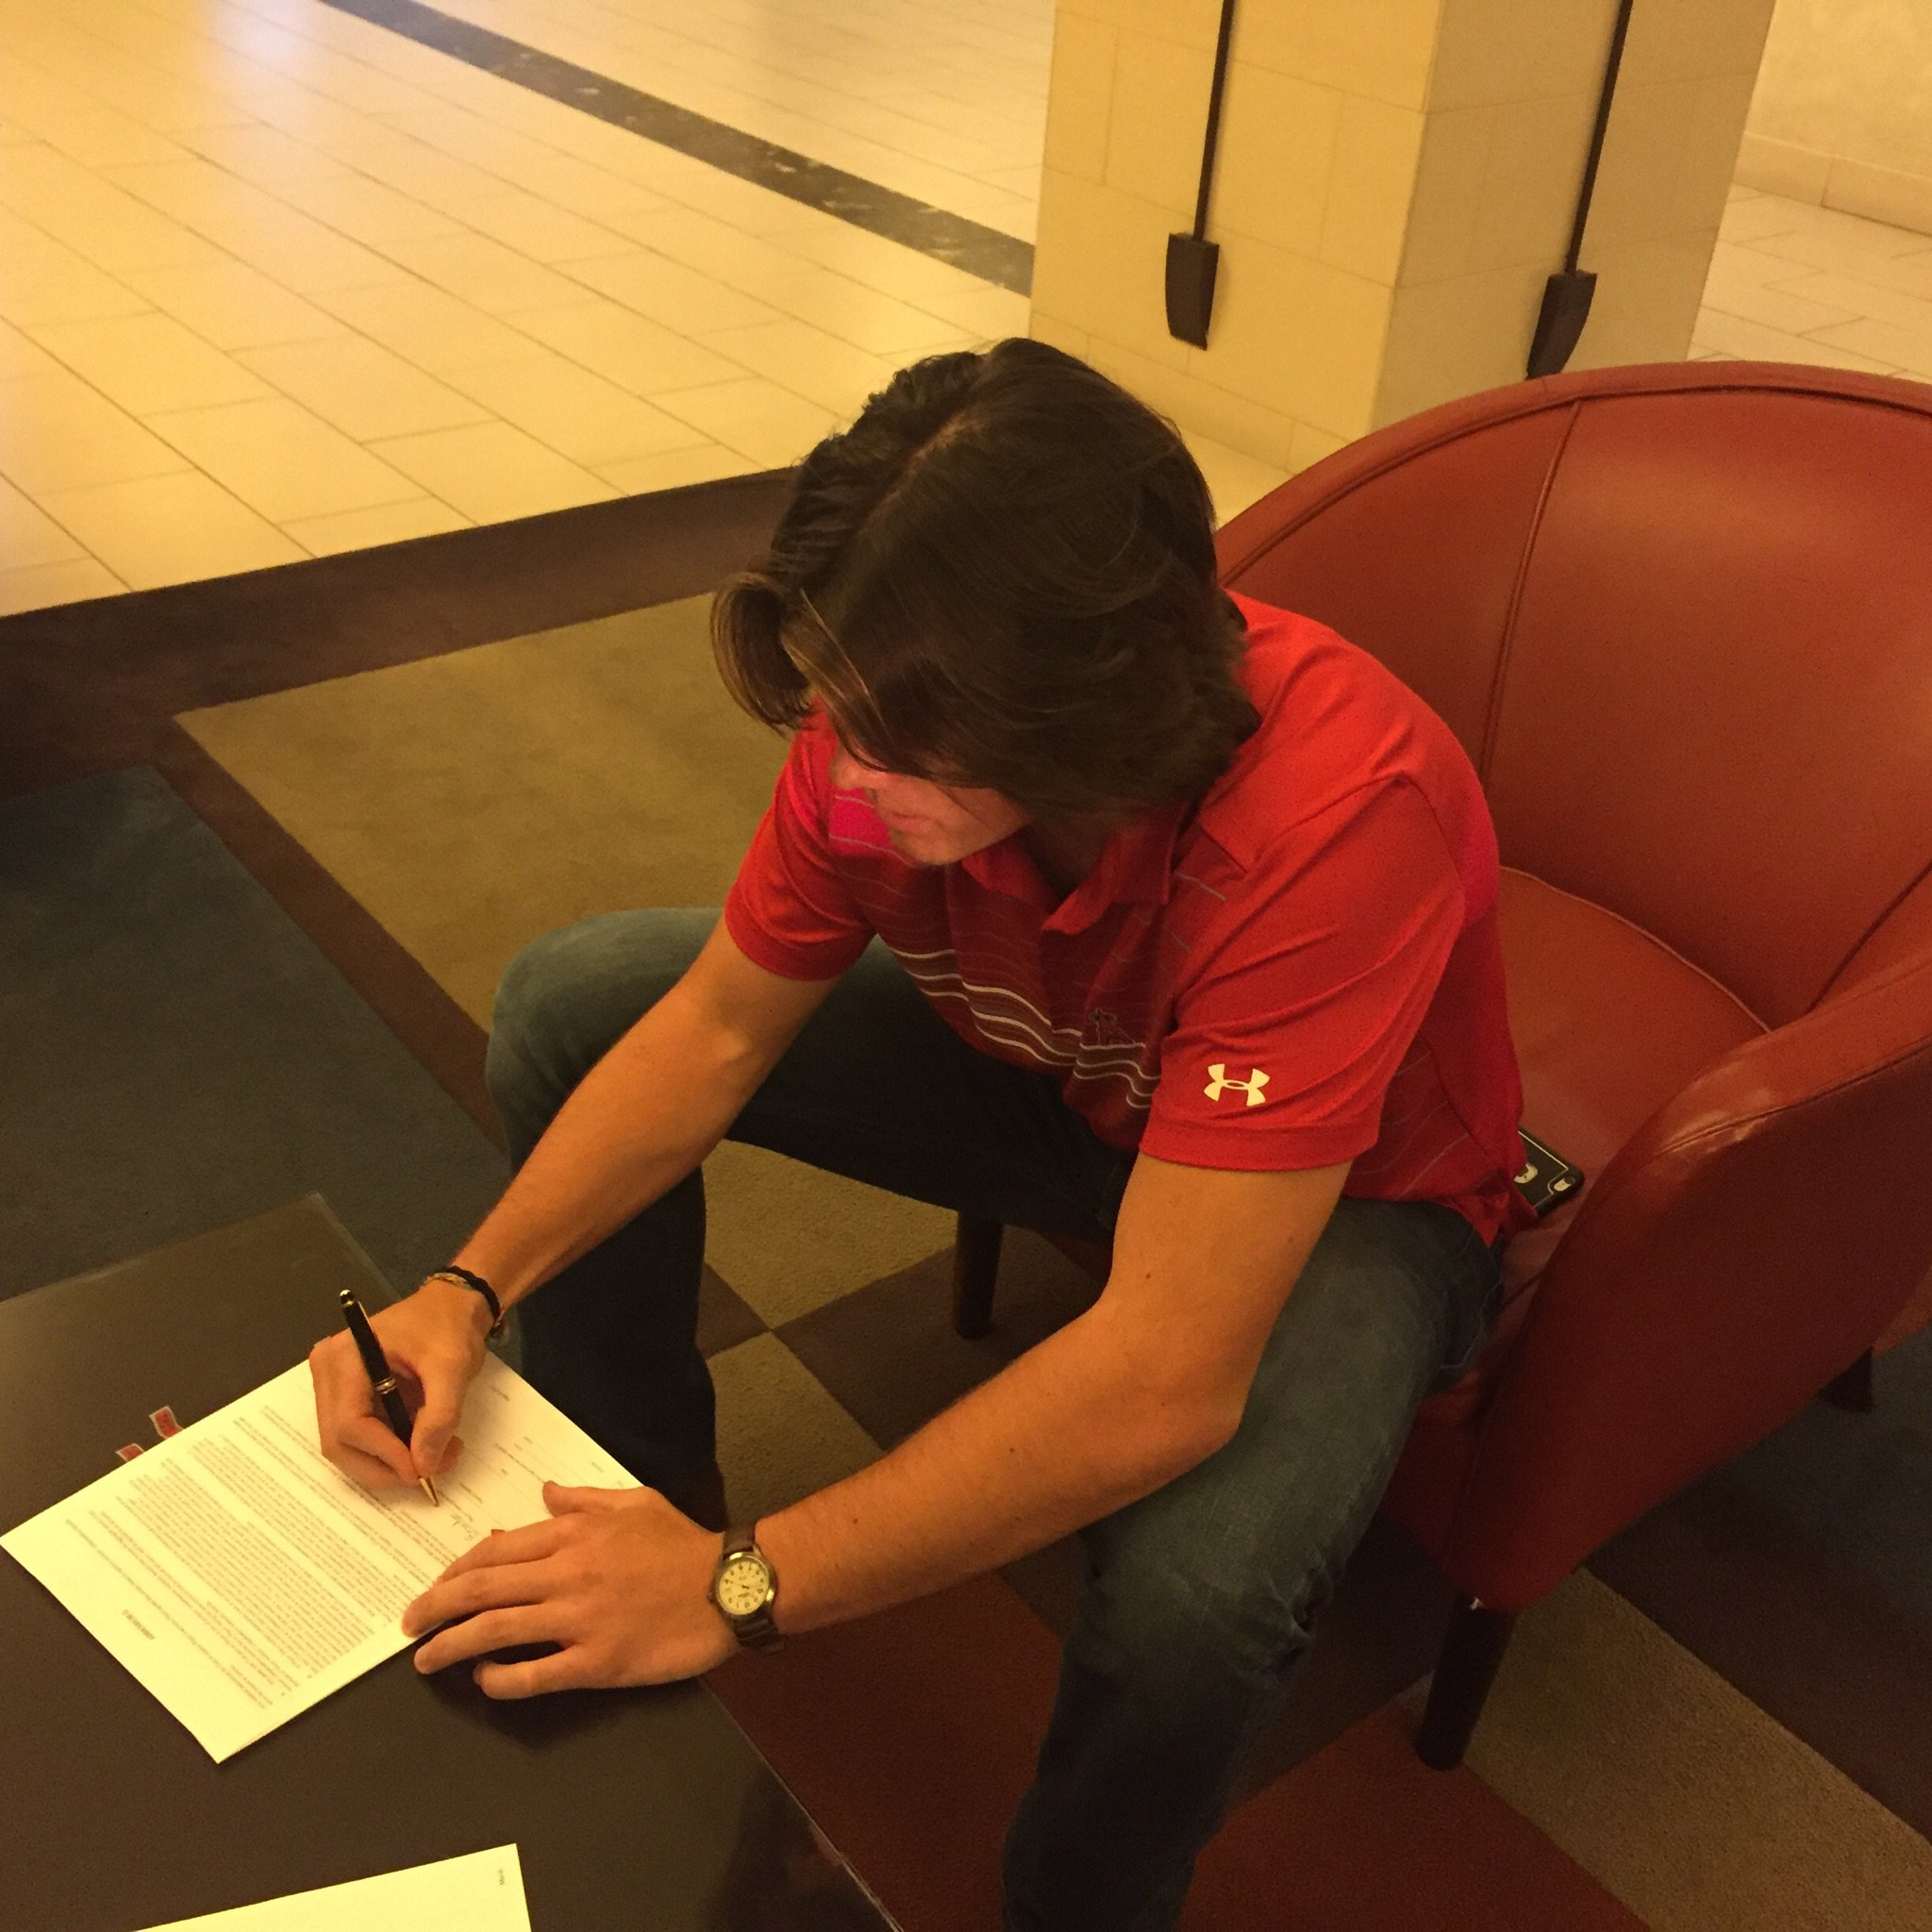 Marsh, a second round pick, puts ink to paper.